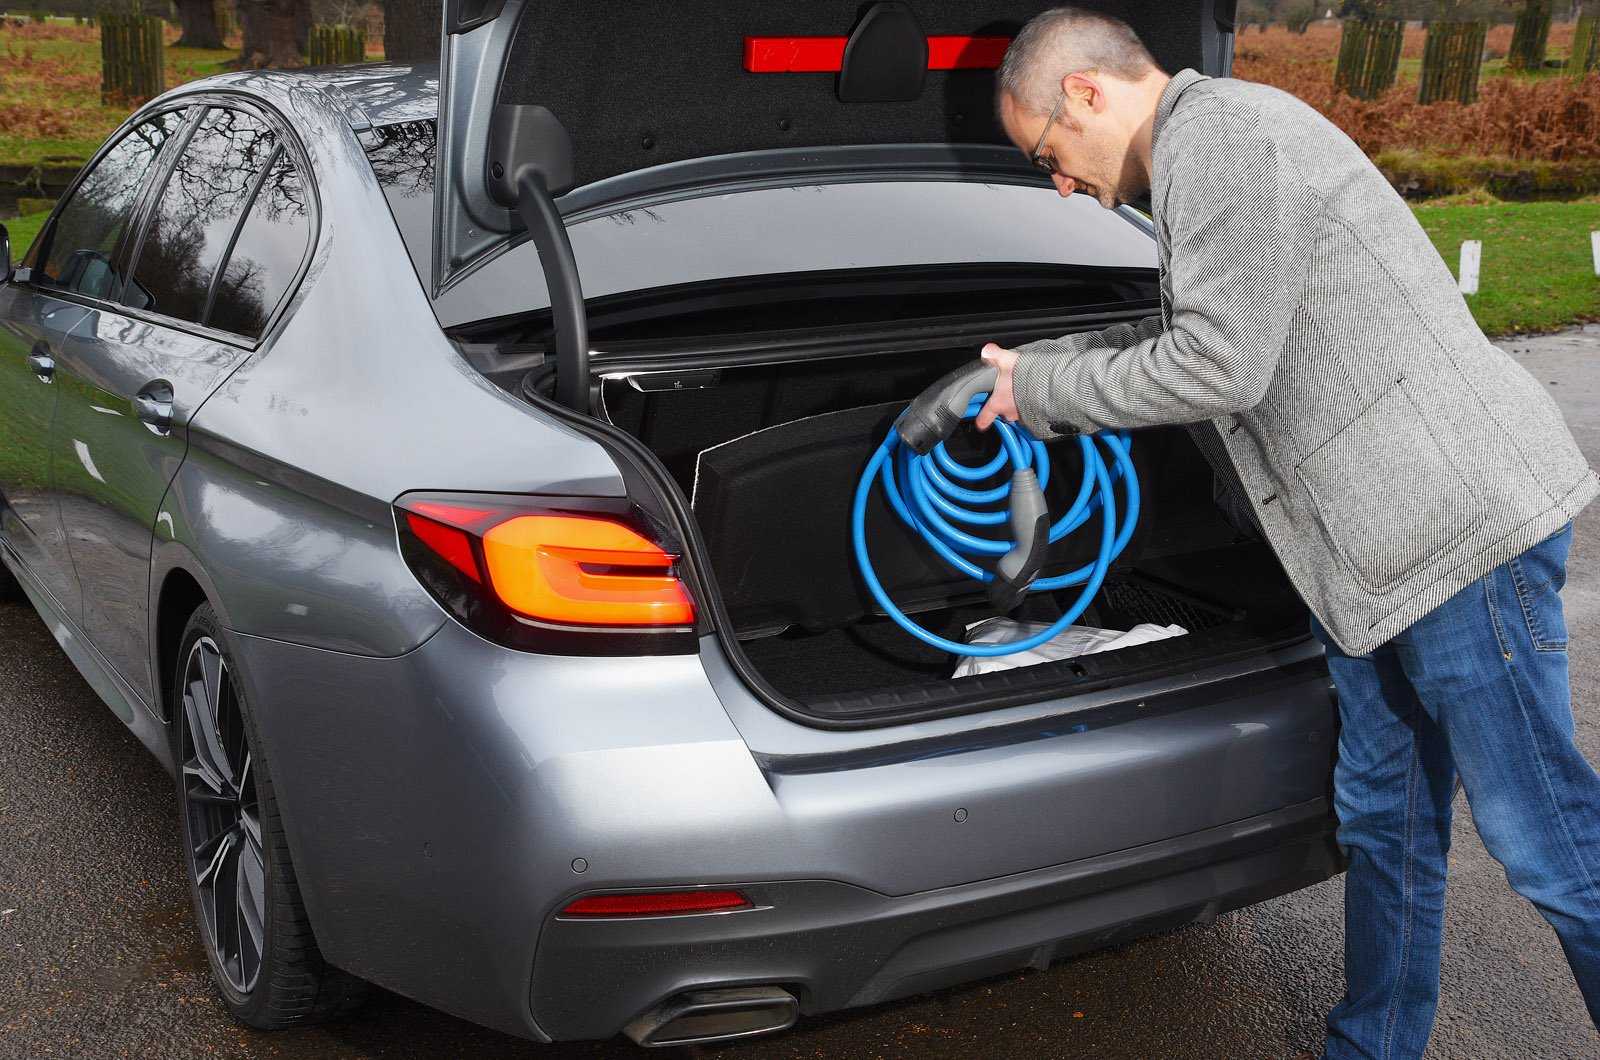 LT BMW 530e removing charging cable from boot